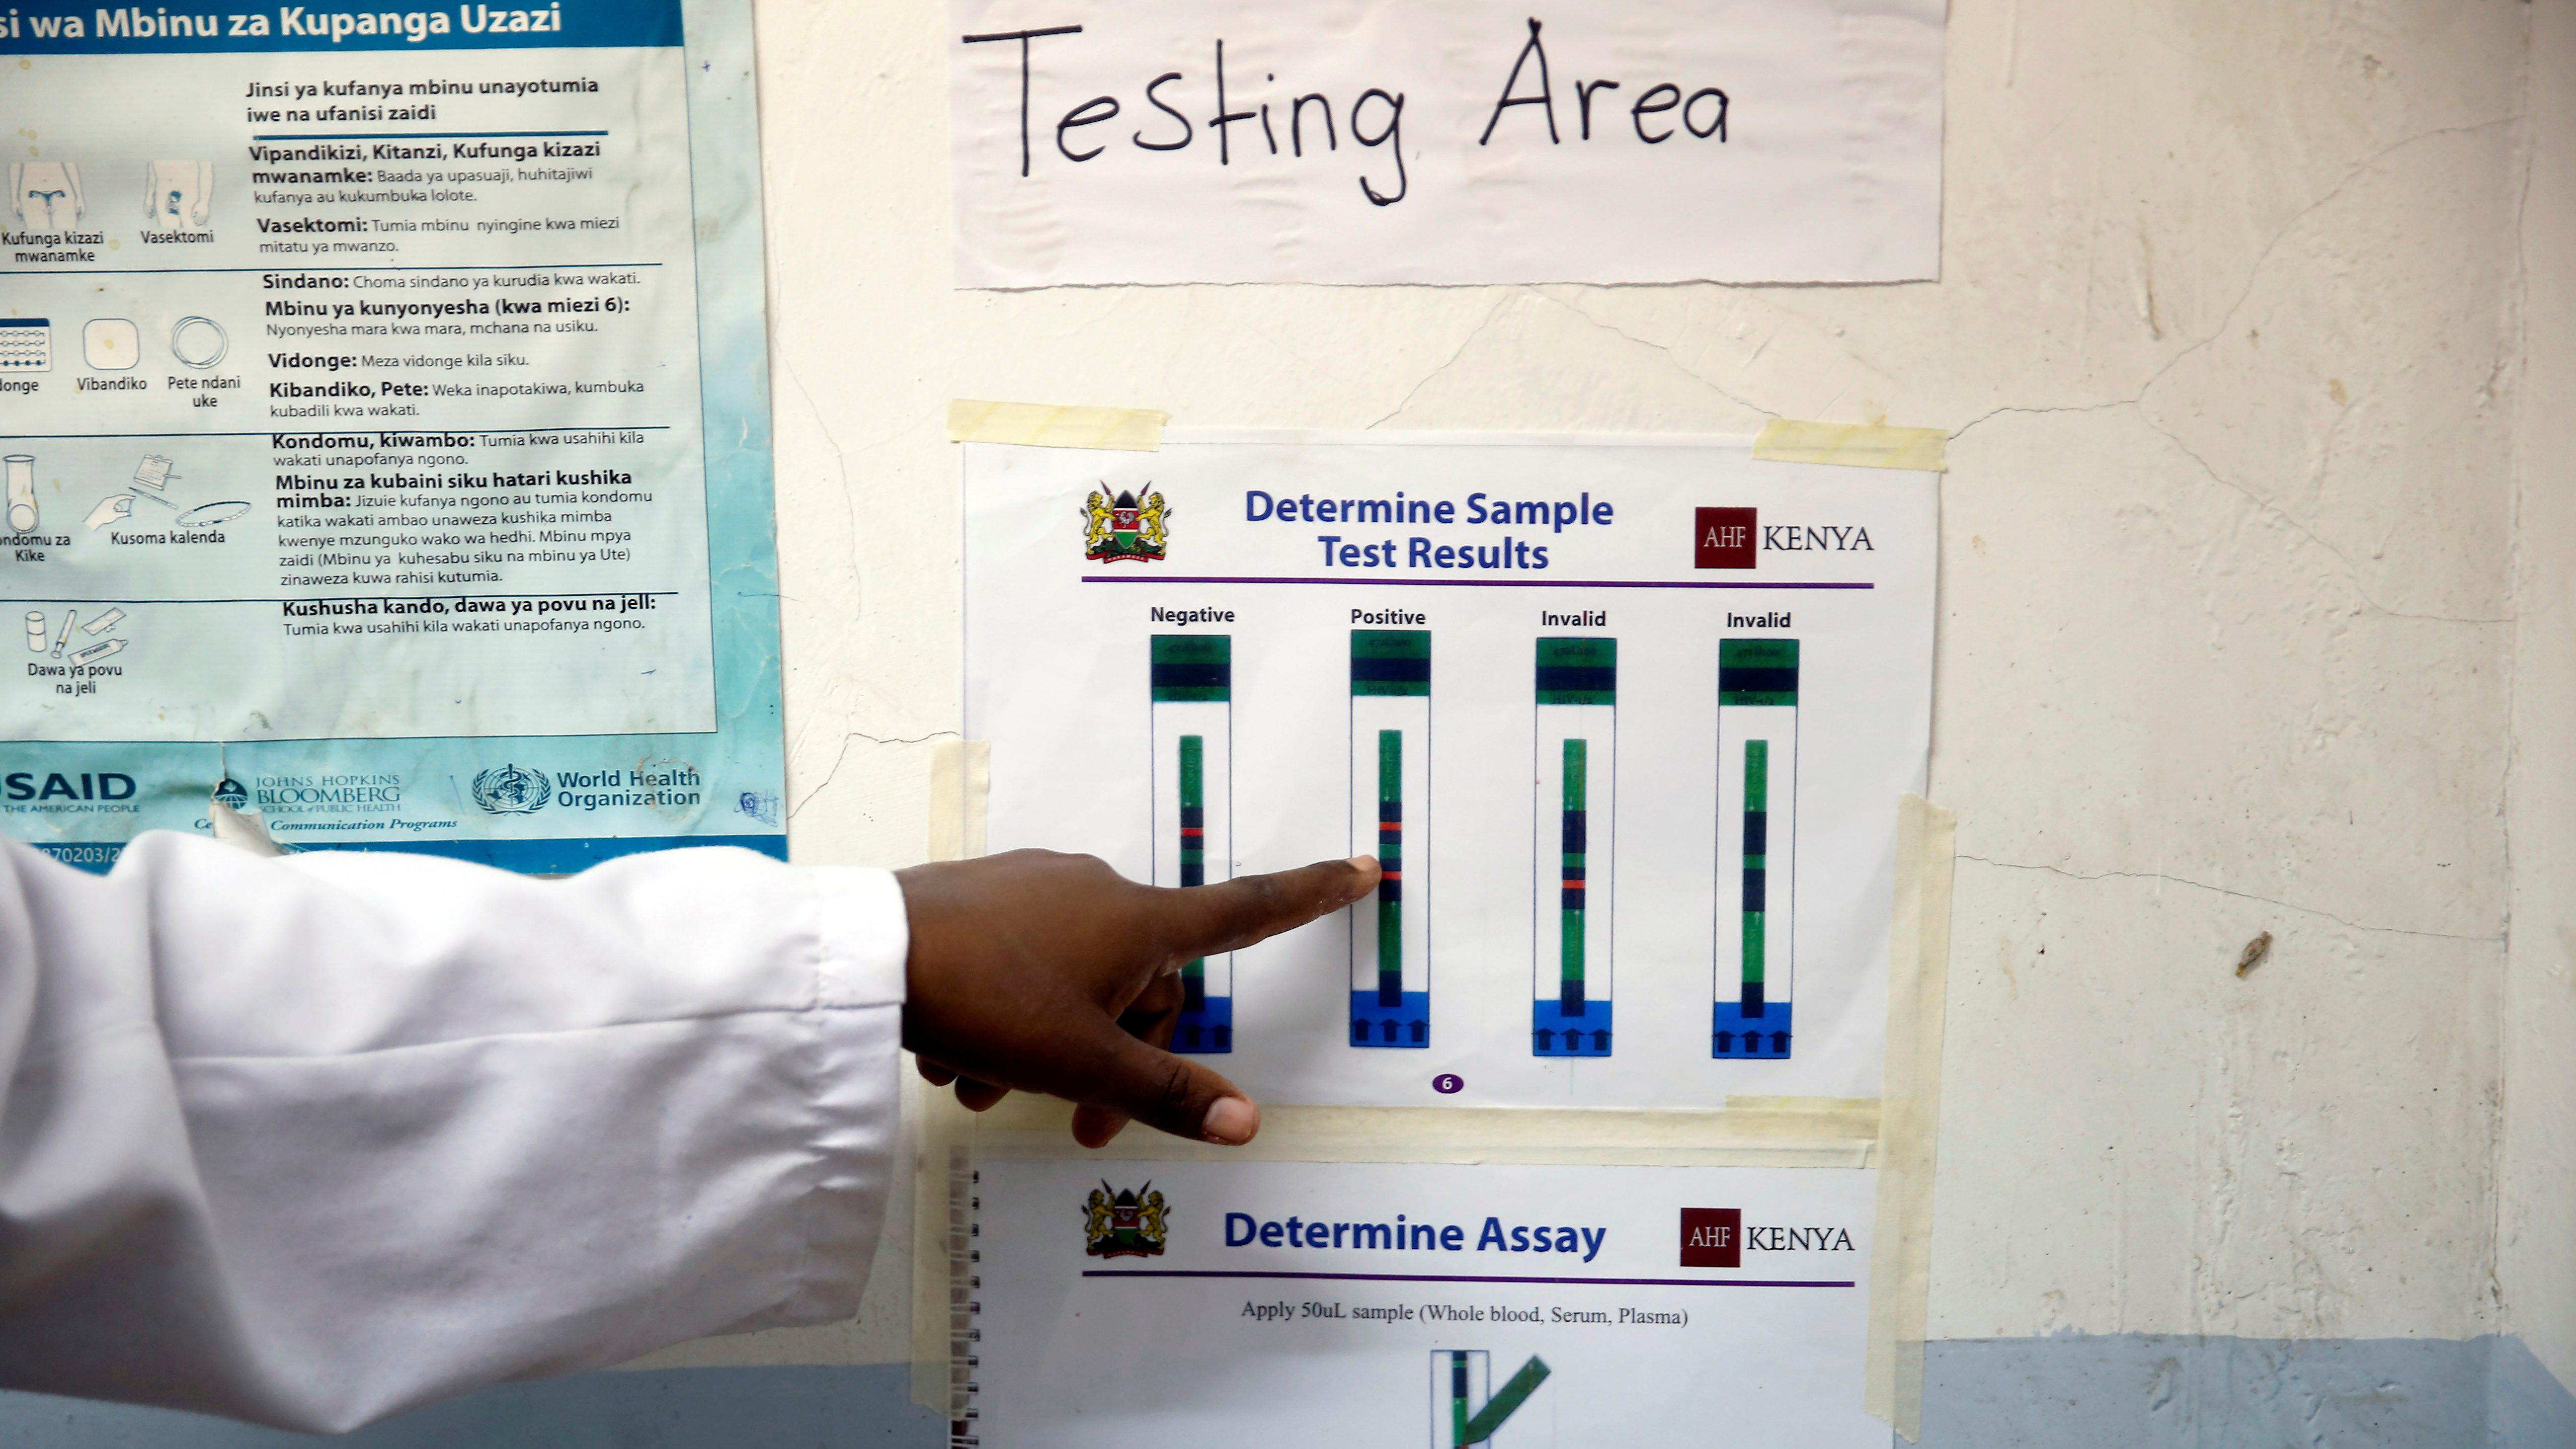 A finger points to a poster of test results.